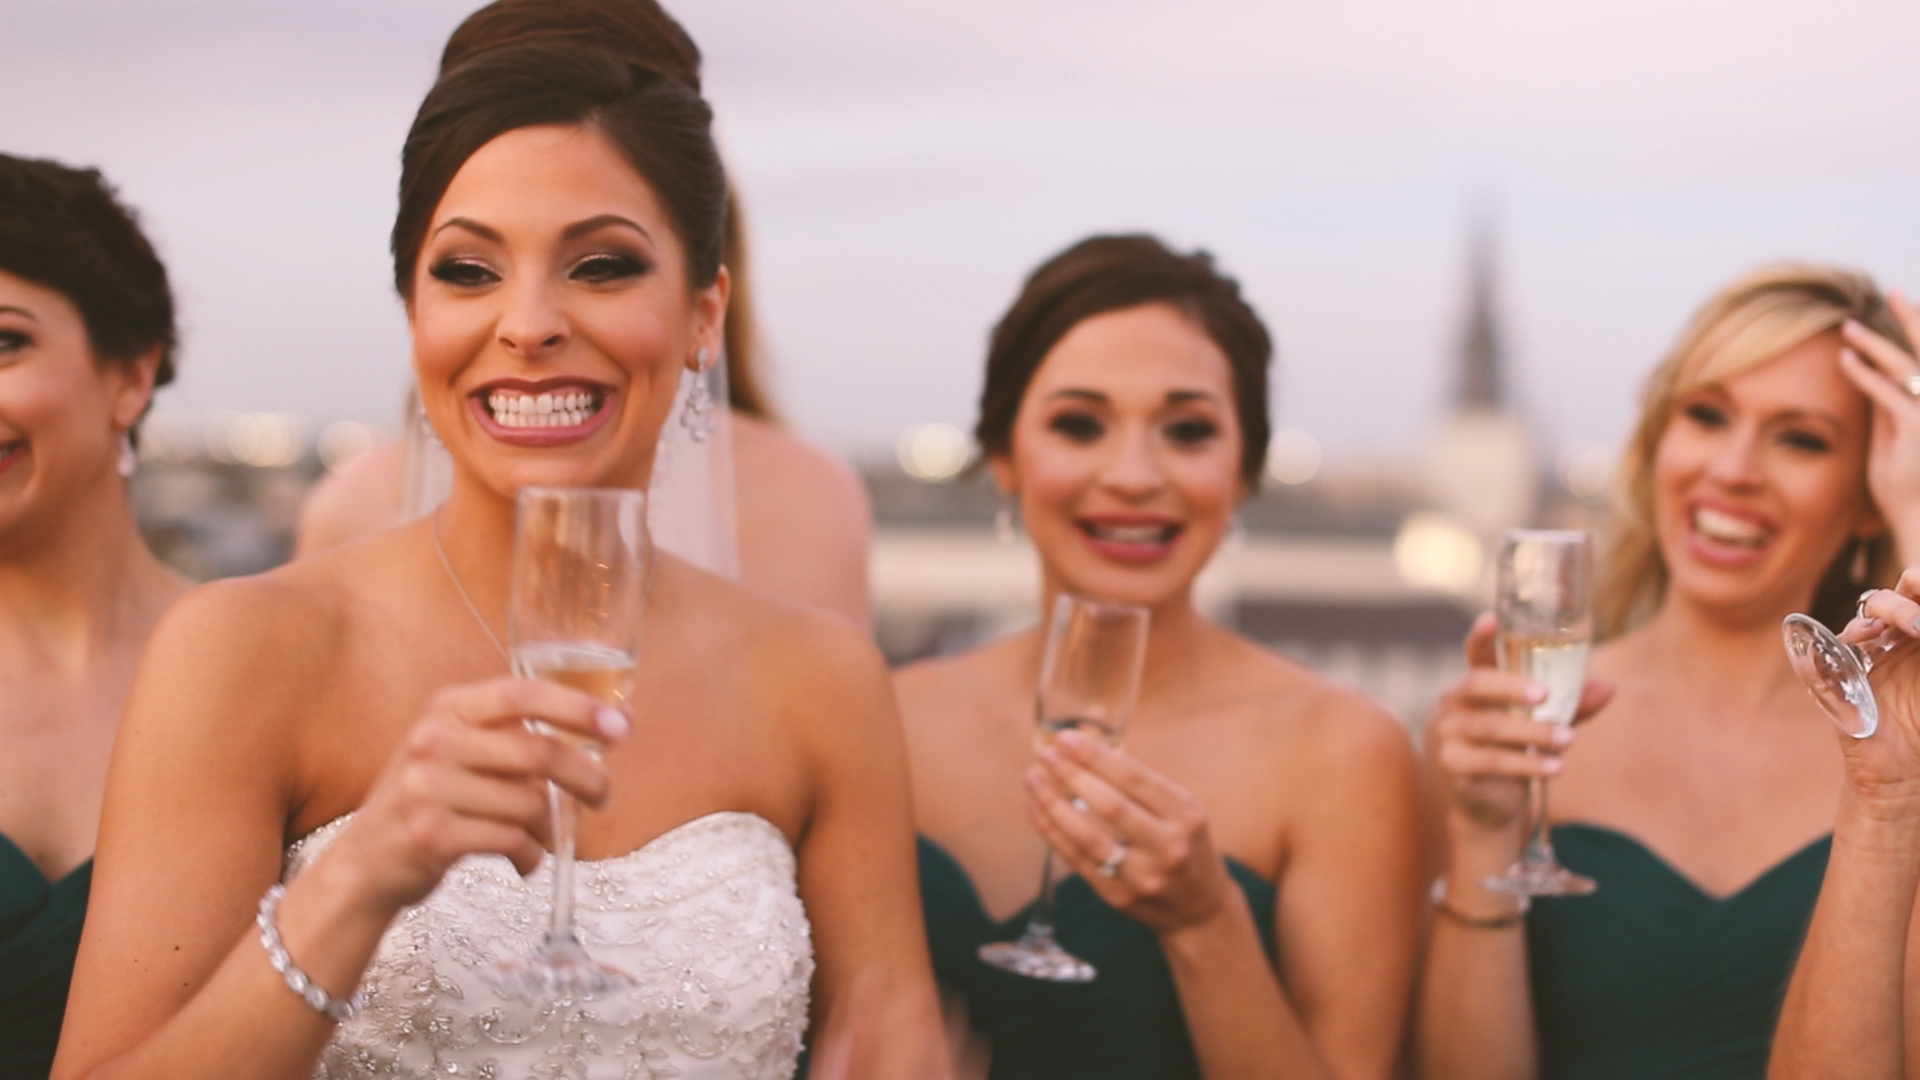 The girls prepared to head to the ceremony with a rooftop champagne toast!